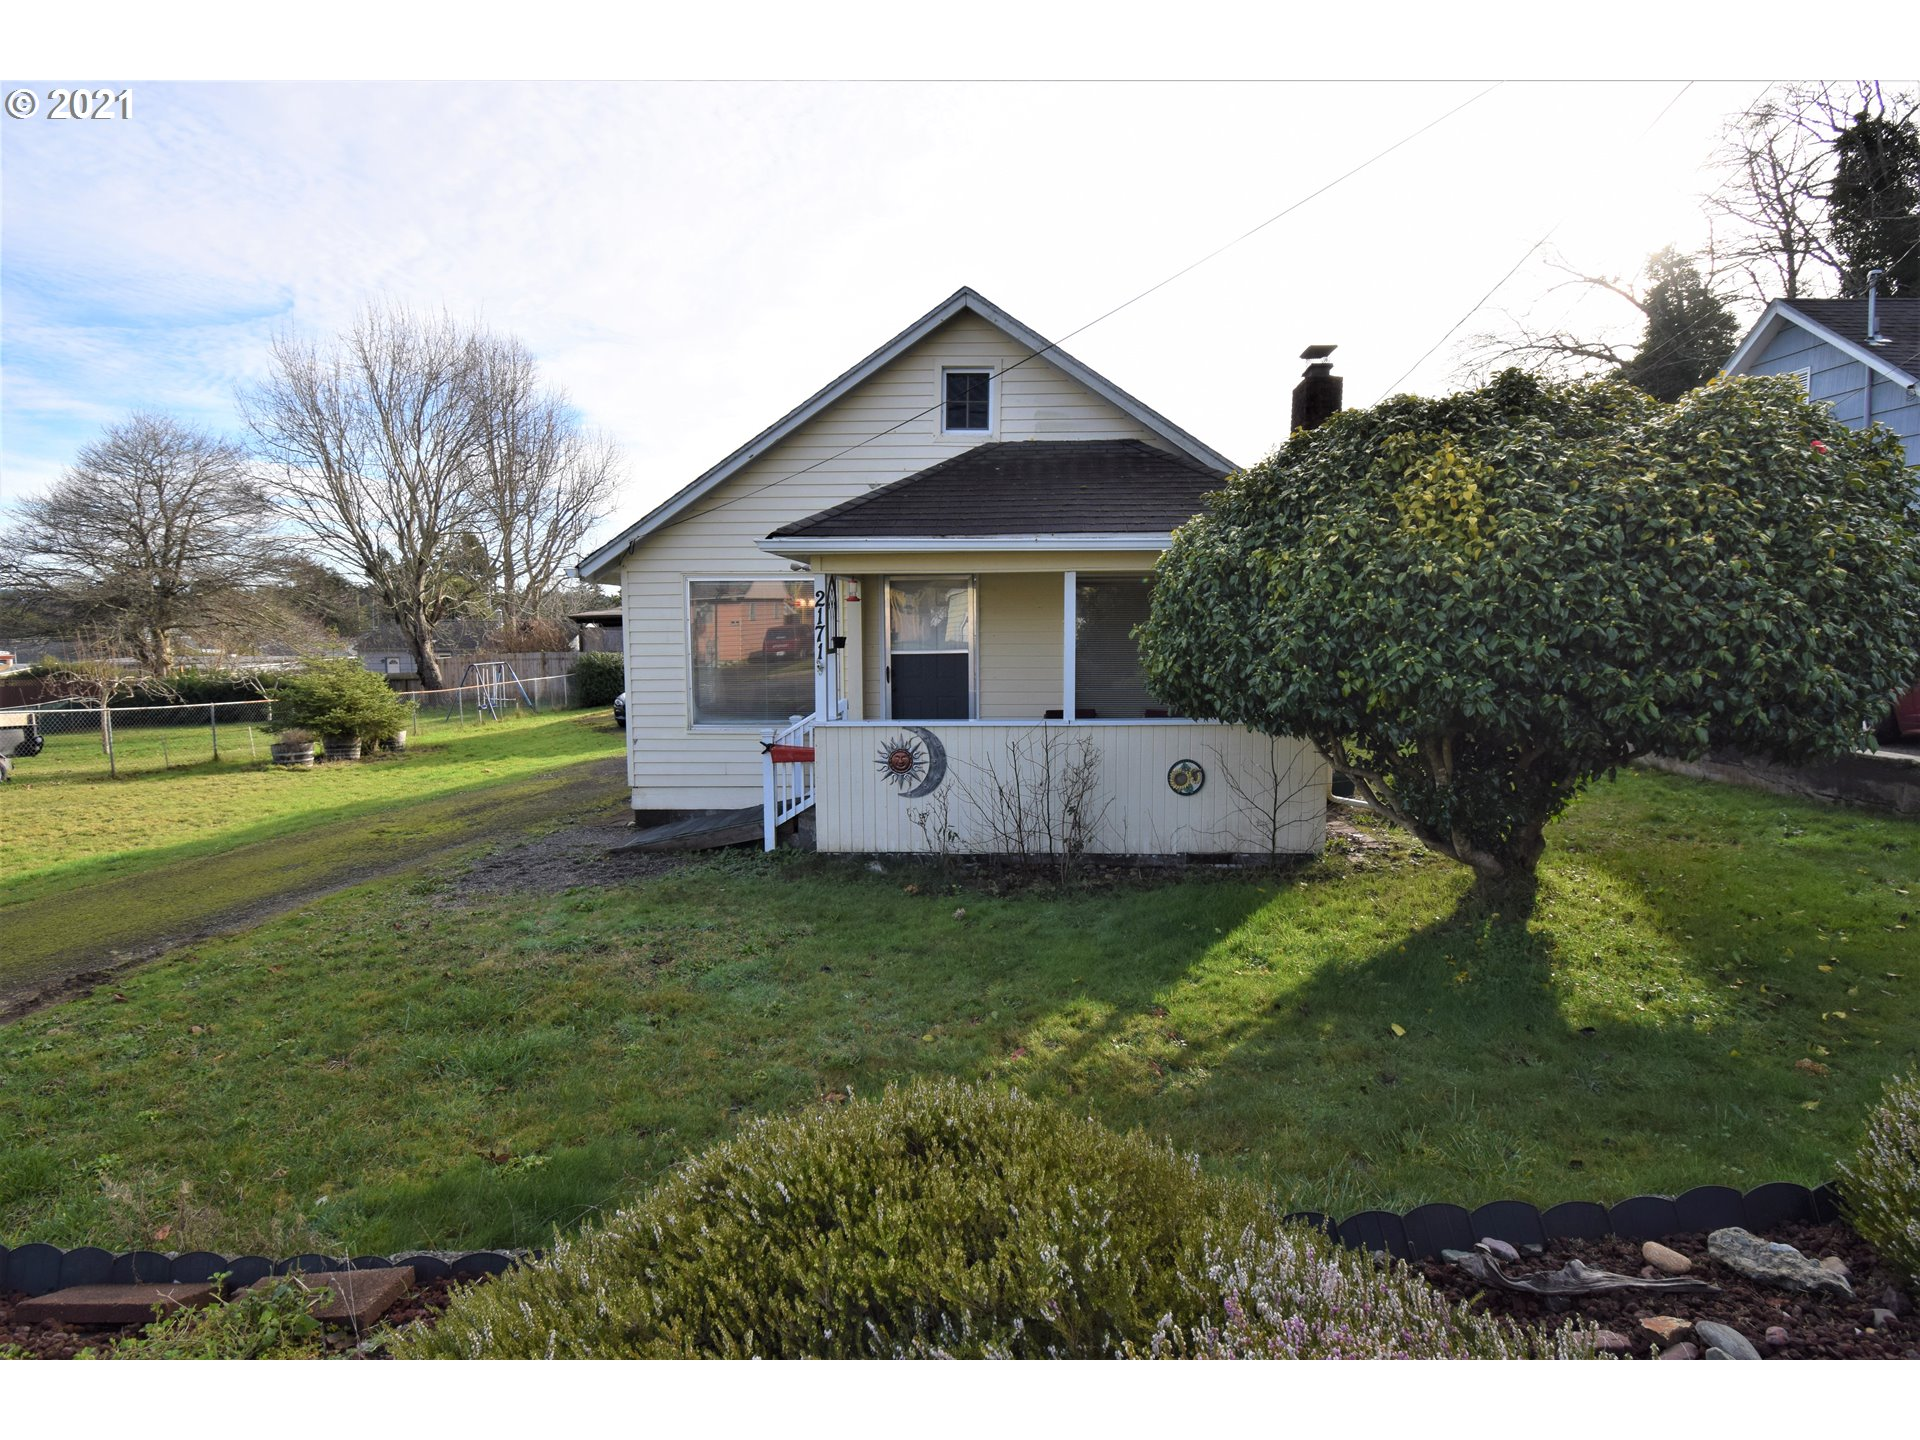 2171 WALL ST, North Bend OR 97459